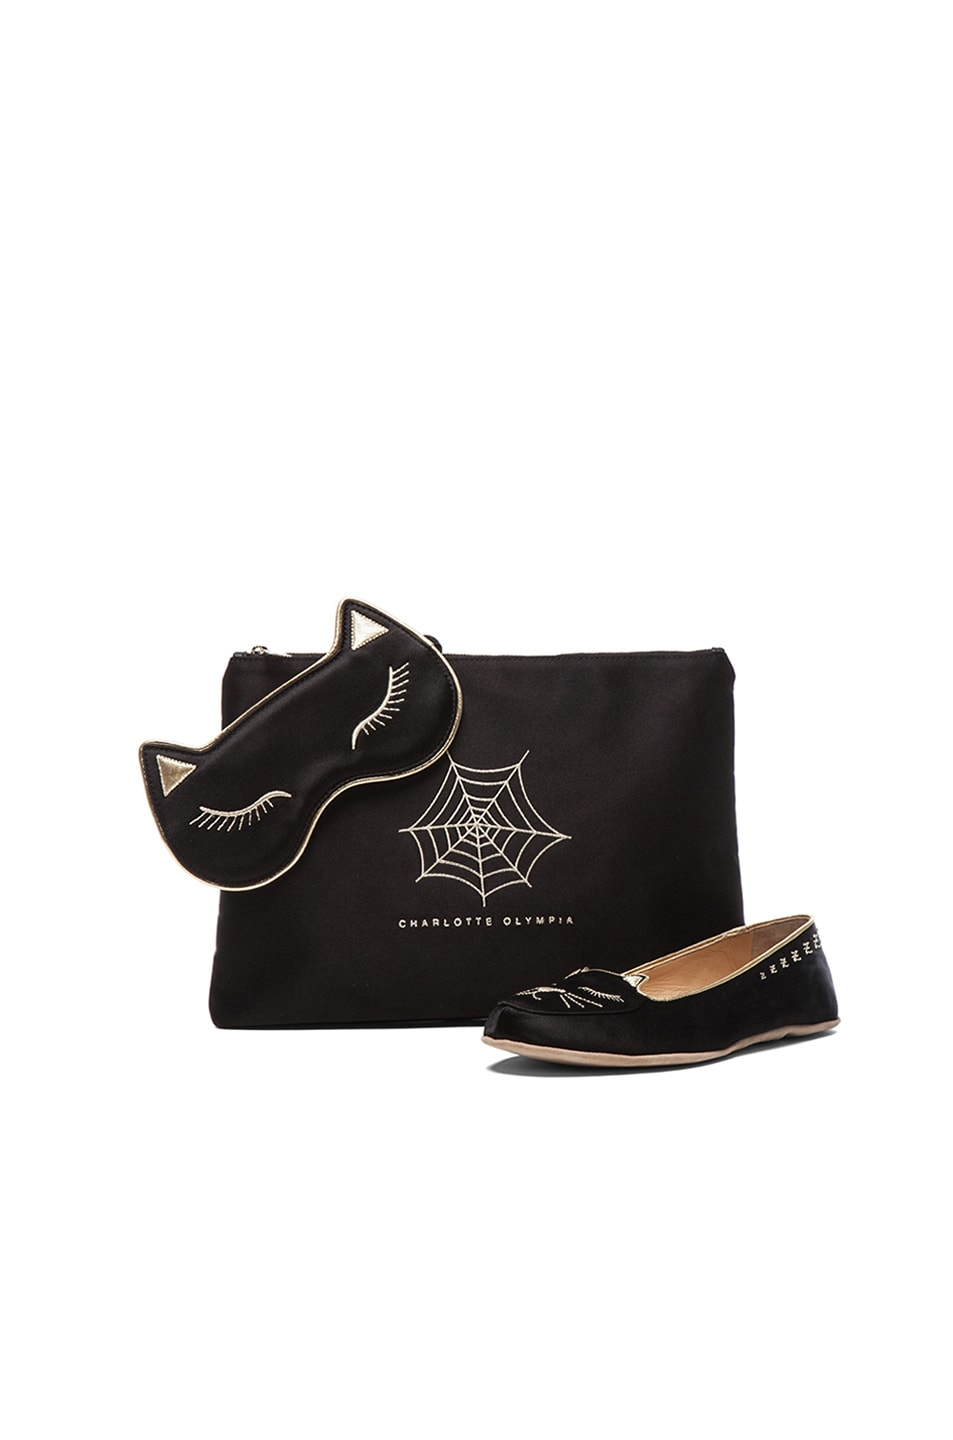 Image 1 of Charlotte Olympia Cat Nap Set in Black